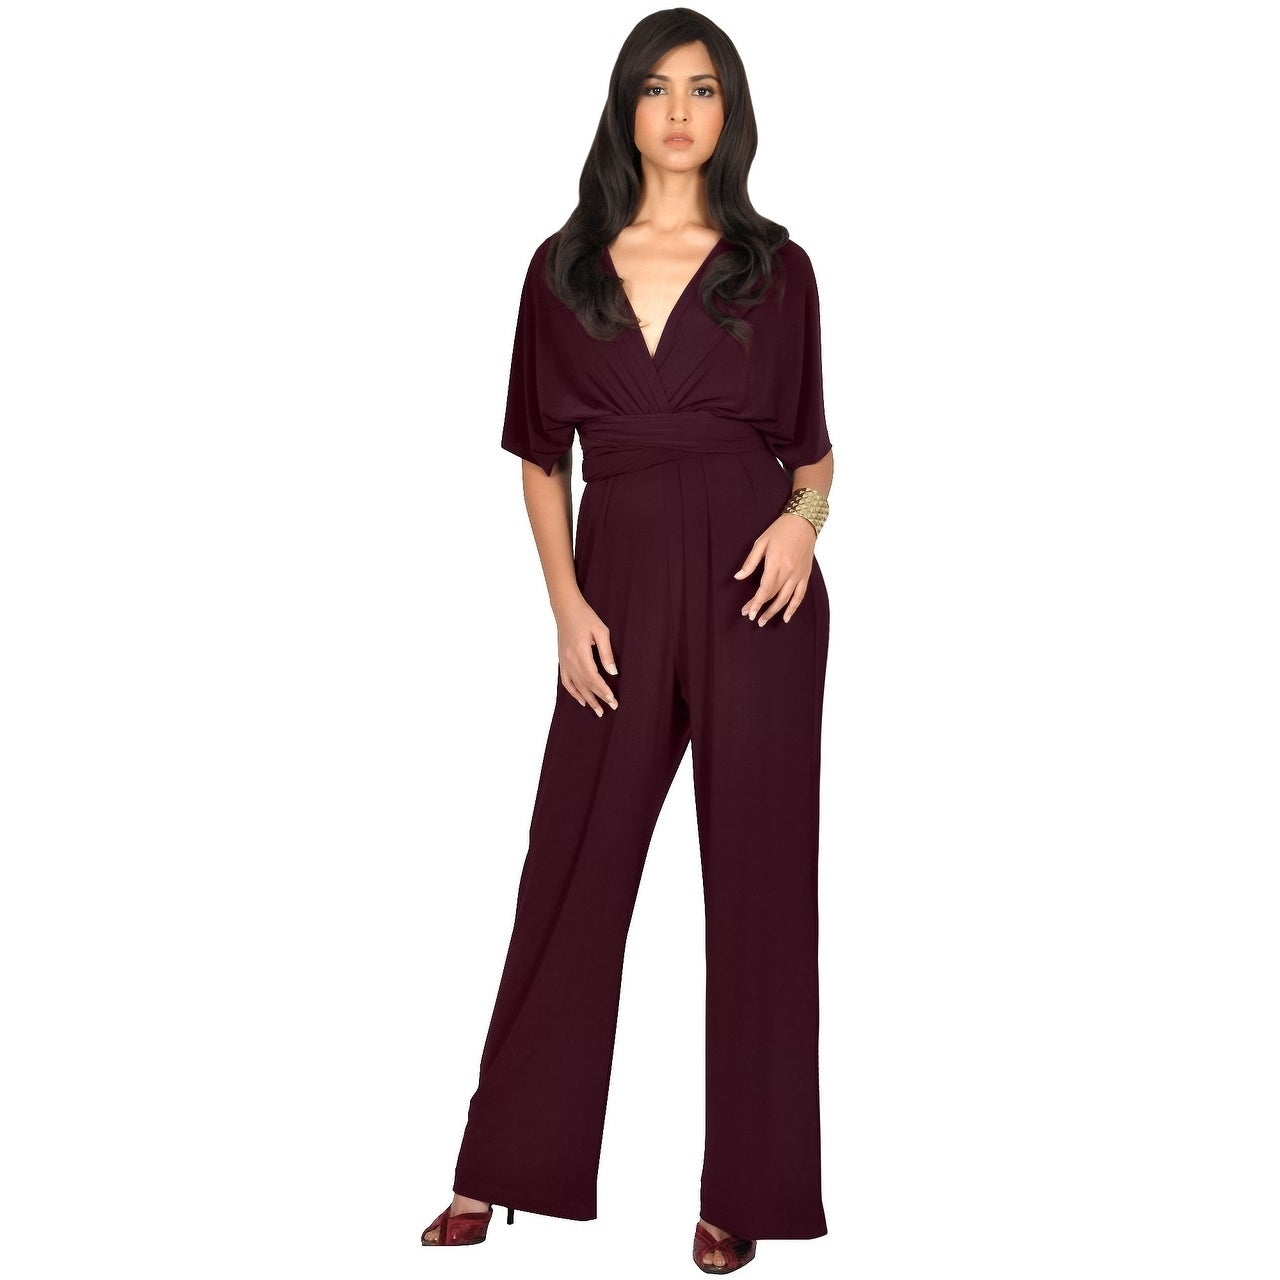 fc6bffe7fa8 Shop KOH KOH Womens Convertible Wrap Cocktail Party Jumpsuit Romper Pants -  Free Shipping Today - Overstock - 12736524